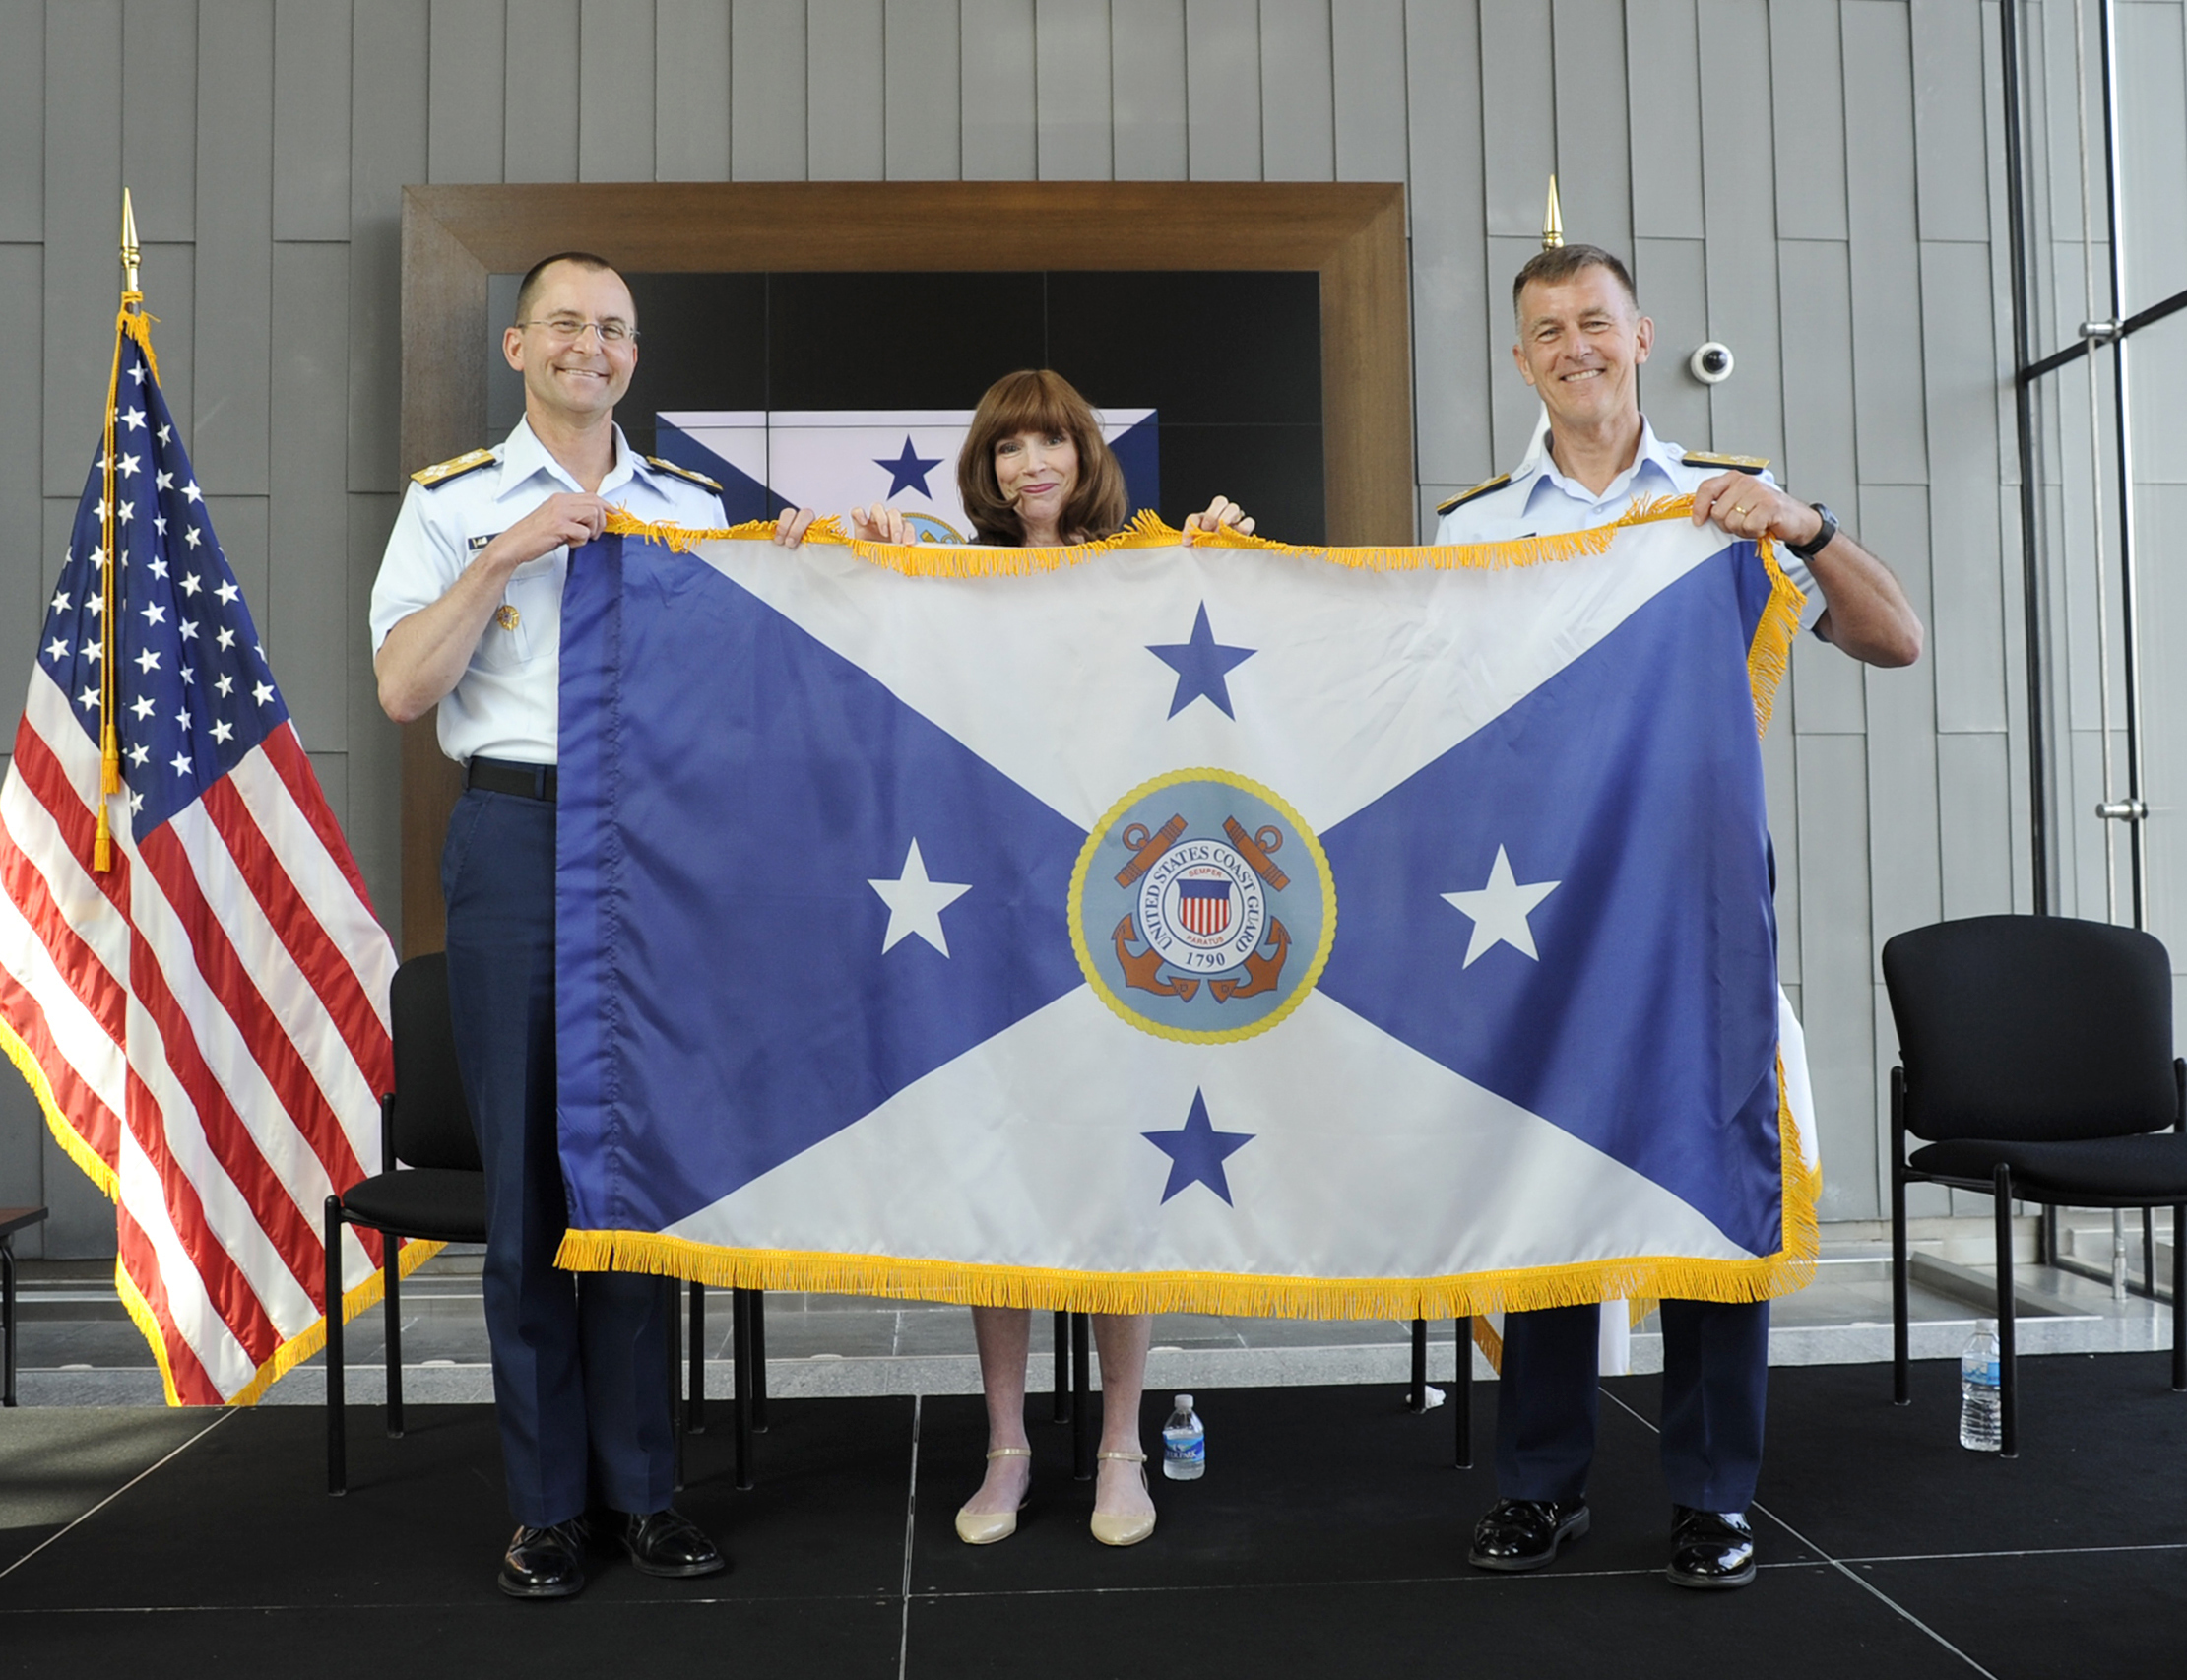 Adm. Paul Zukunft (right), commandant of the Coast Guard, presents the new flag of the vice commandant of the Coast Guard to Adm. Charles Michel at the conclusion of a ceremony at the Douglas Munro Coast Guard Headquarters Building in Washington, D.C., on June 1, 2016. US Coast Guard photo. Following passage of the Coast Guard Authorization Act of 2015, the president nominated Michel for promotion from vice admiral to admiral to align the Coast Guard's leadership structure to that of the other armed services. U.S. Coast Guard photo by Senior Chief Kyle Niemi